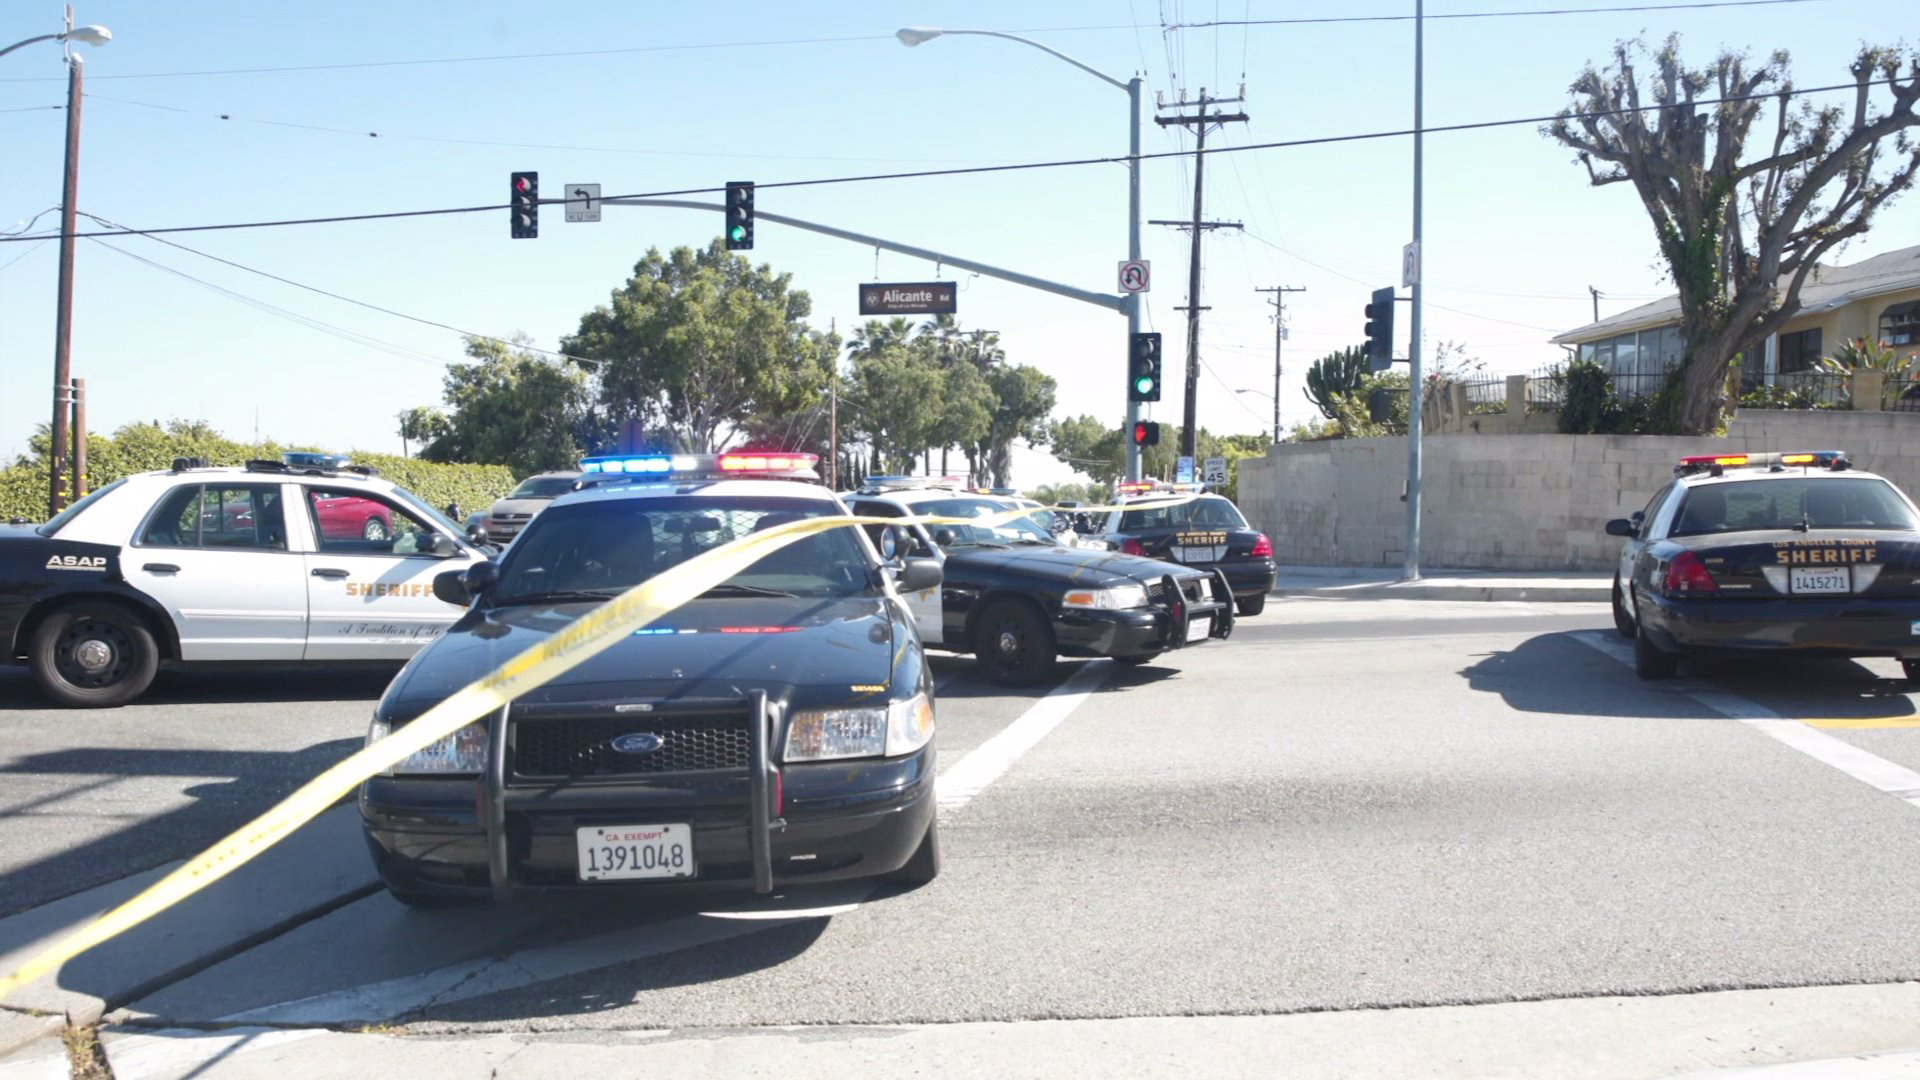 Officers respond to the scene of a shooting rampage in the Whittier and La Mirada areas left one dead and multiple people injured on April 29, 2017. (Credit: Aaron Benitez)